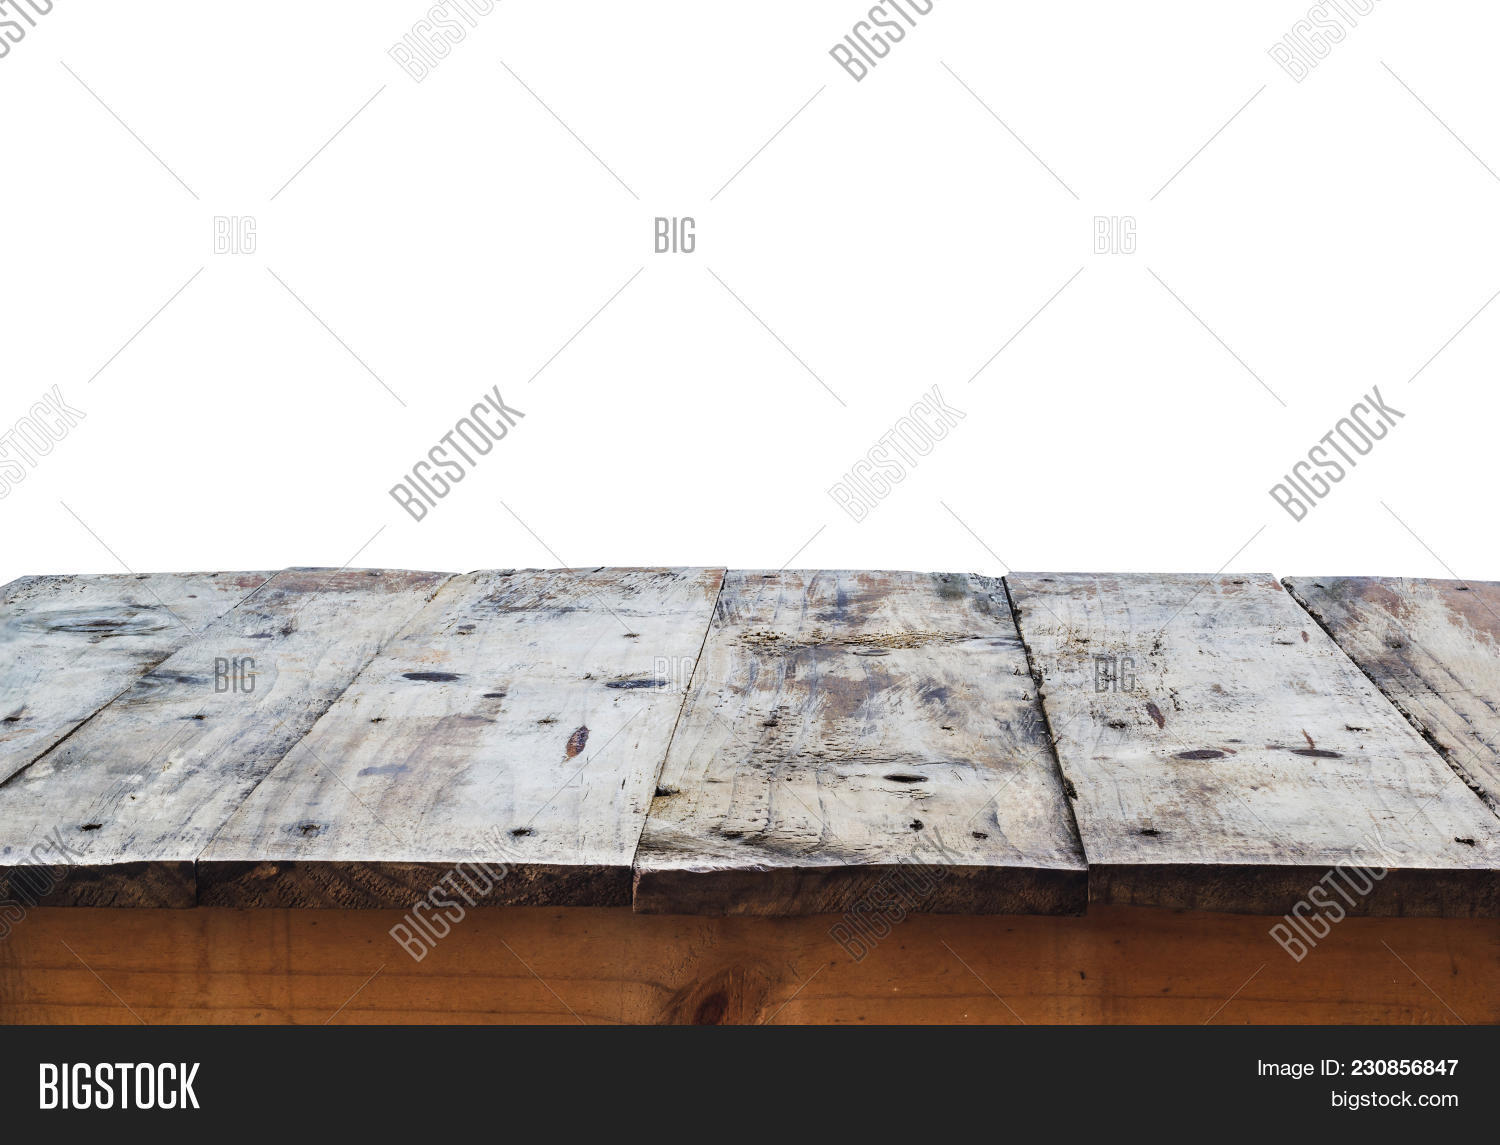 Wooden Plate Wood Image Photo Free Trial Bigstock